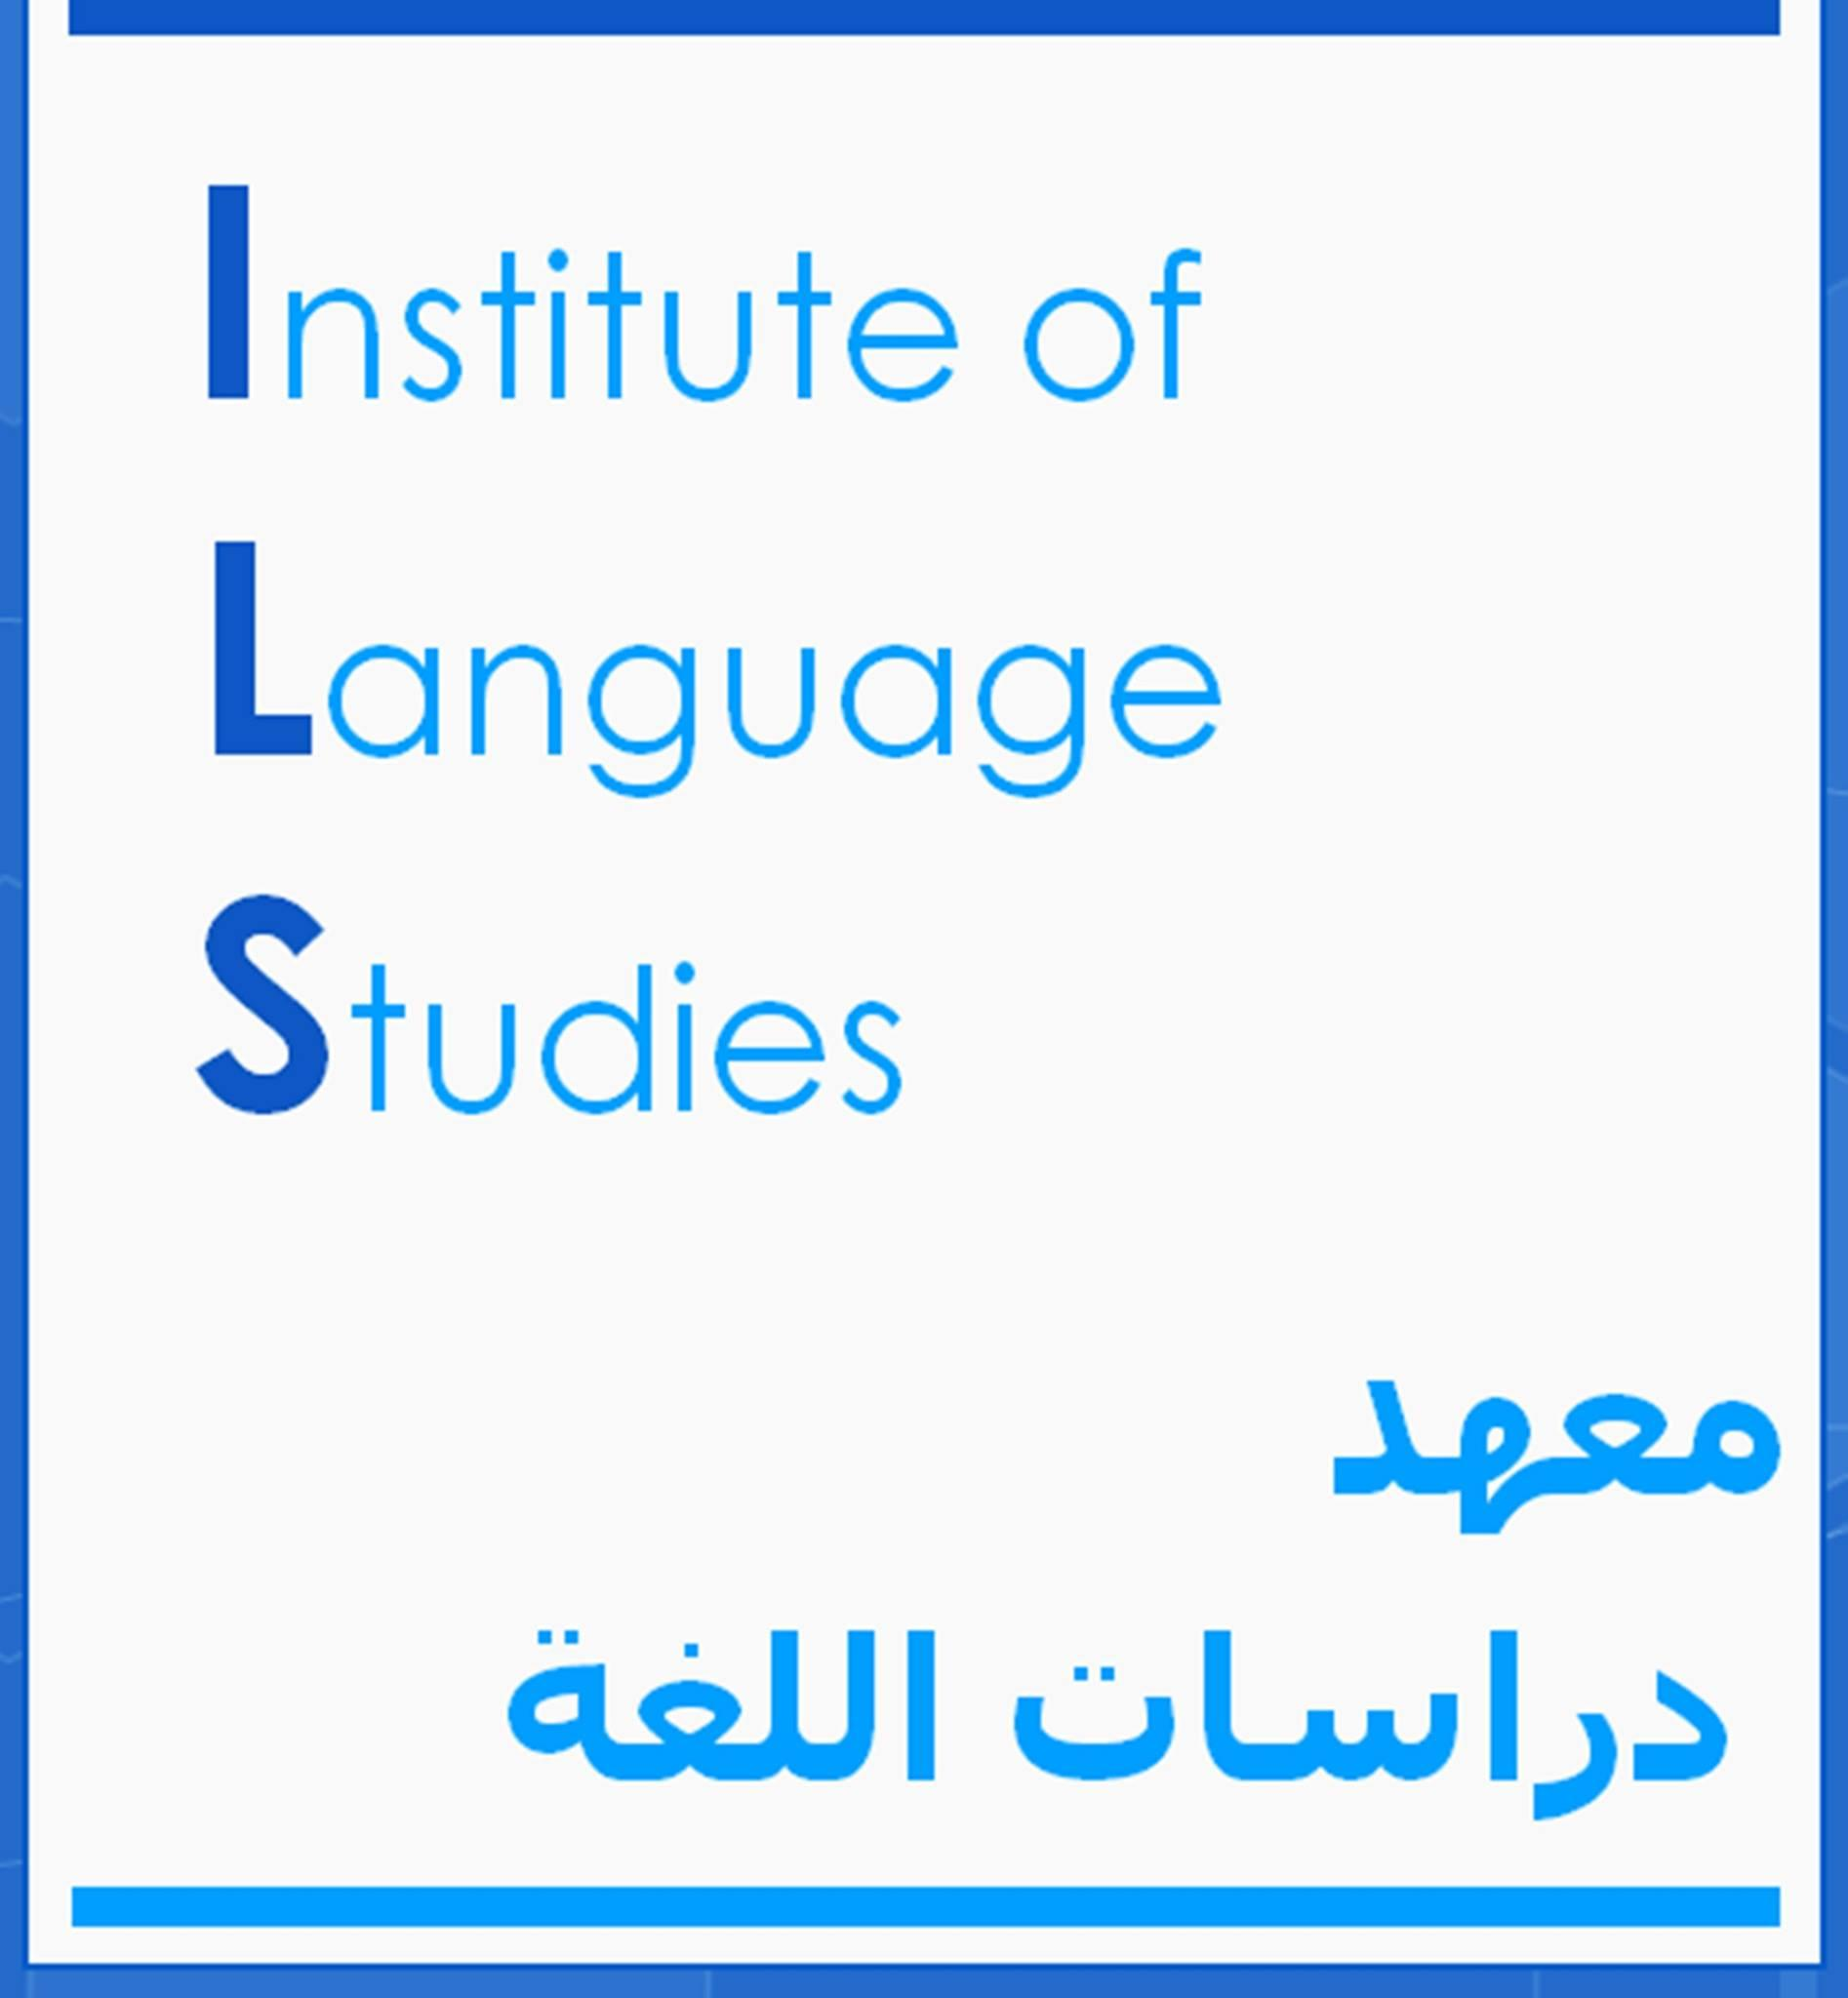 Institute of Language Studies. Photo: Facebook/Institute of Language Studies